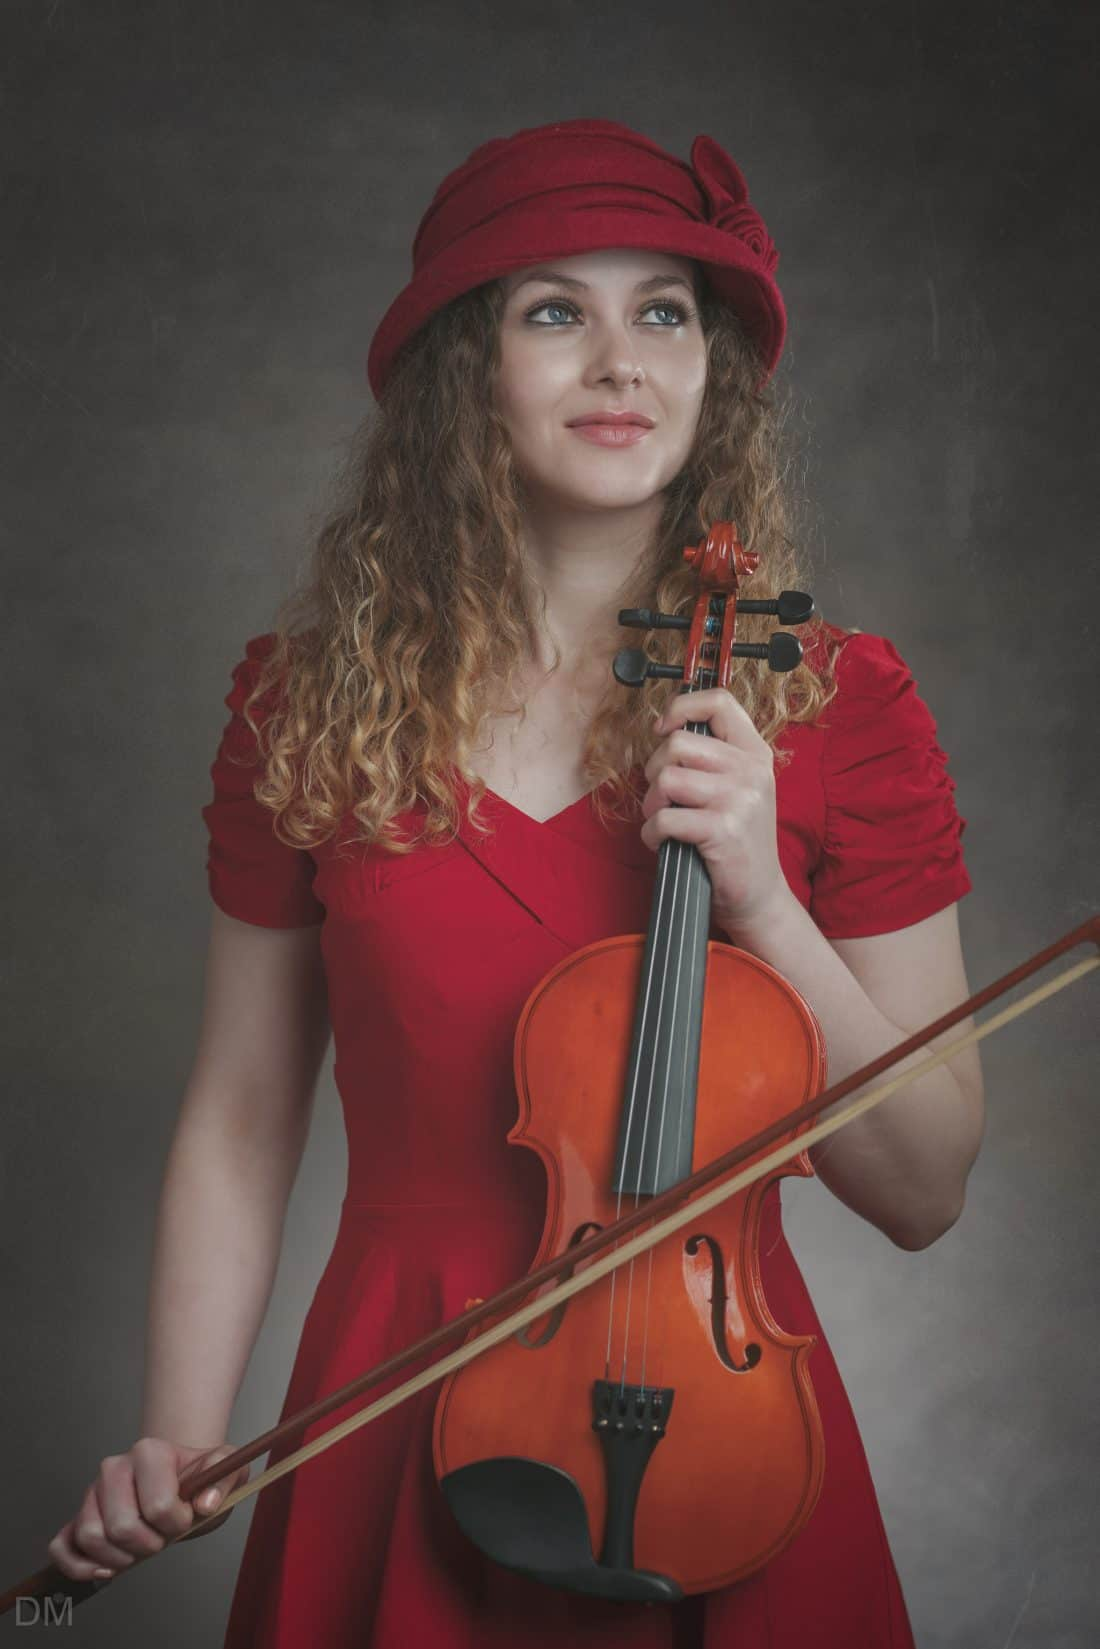 Model in a red dress and red hat holding a violin